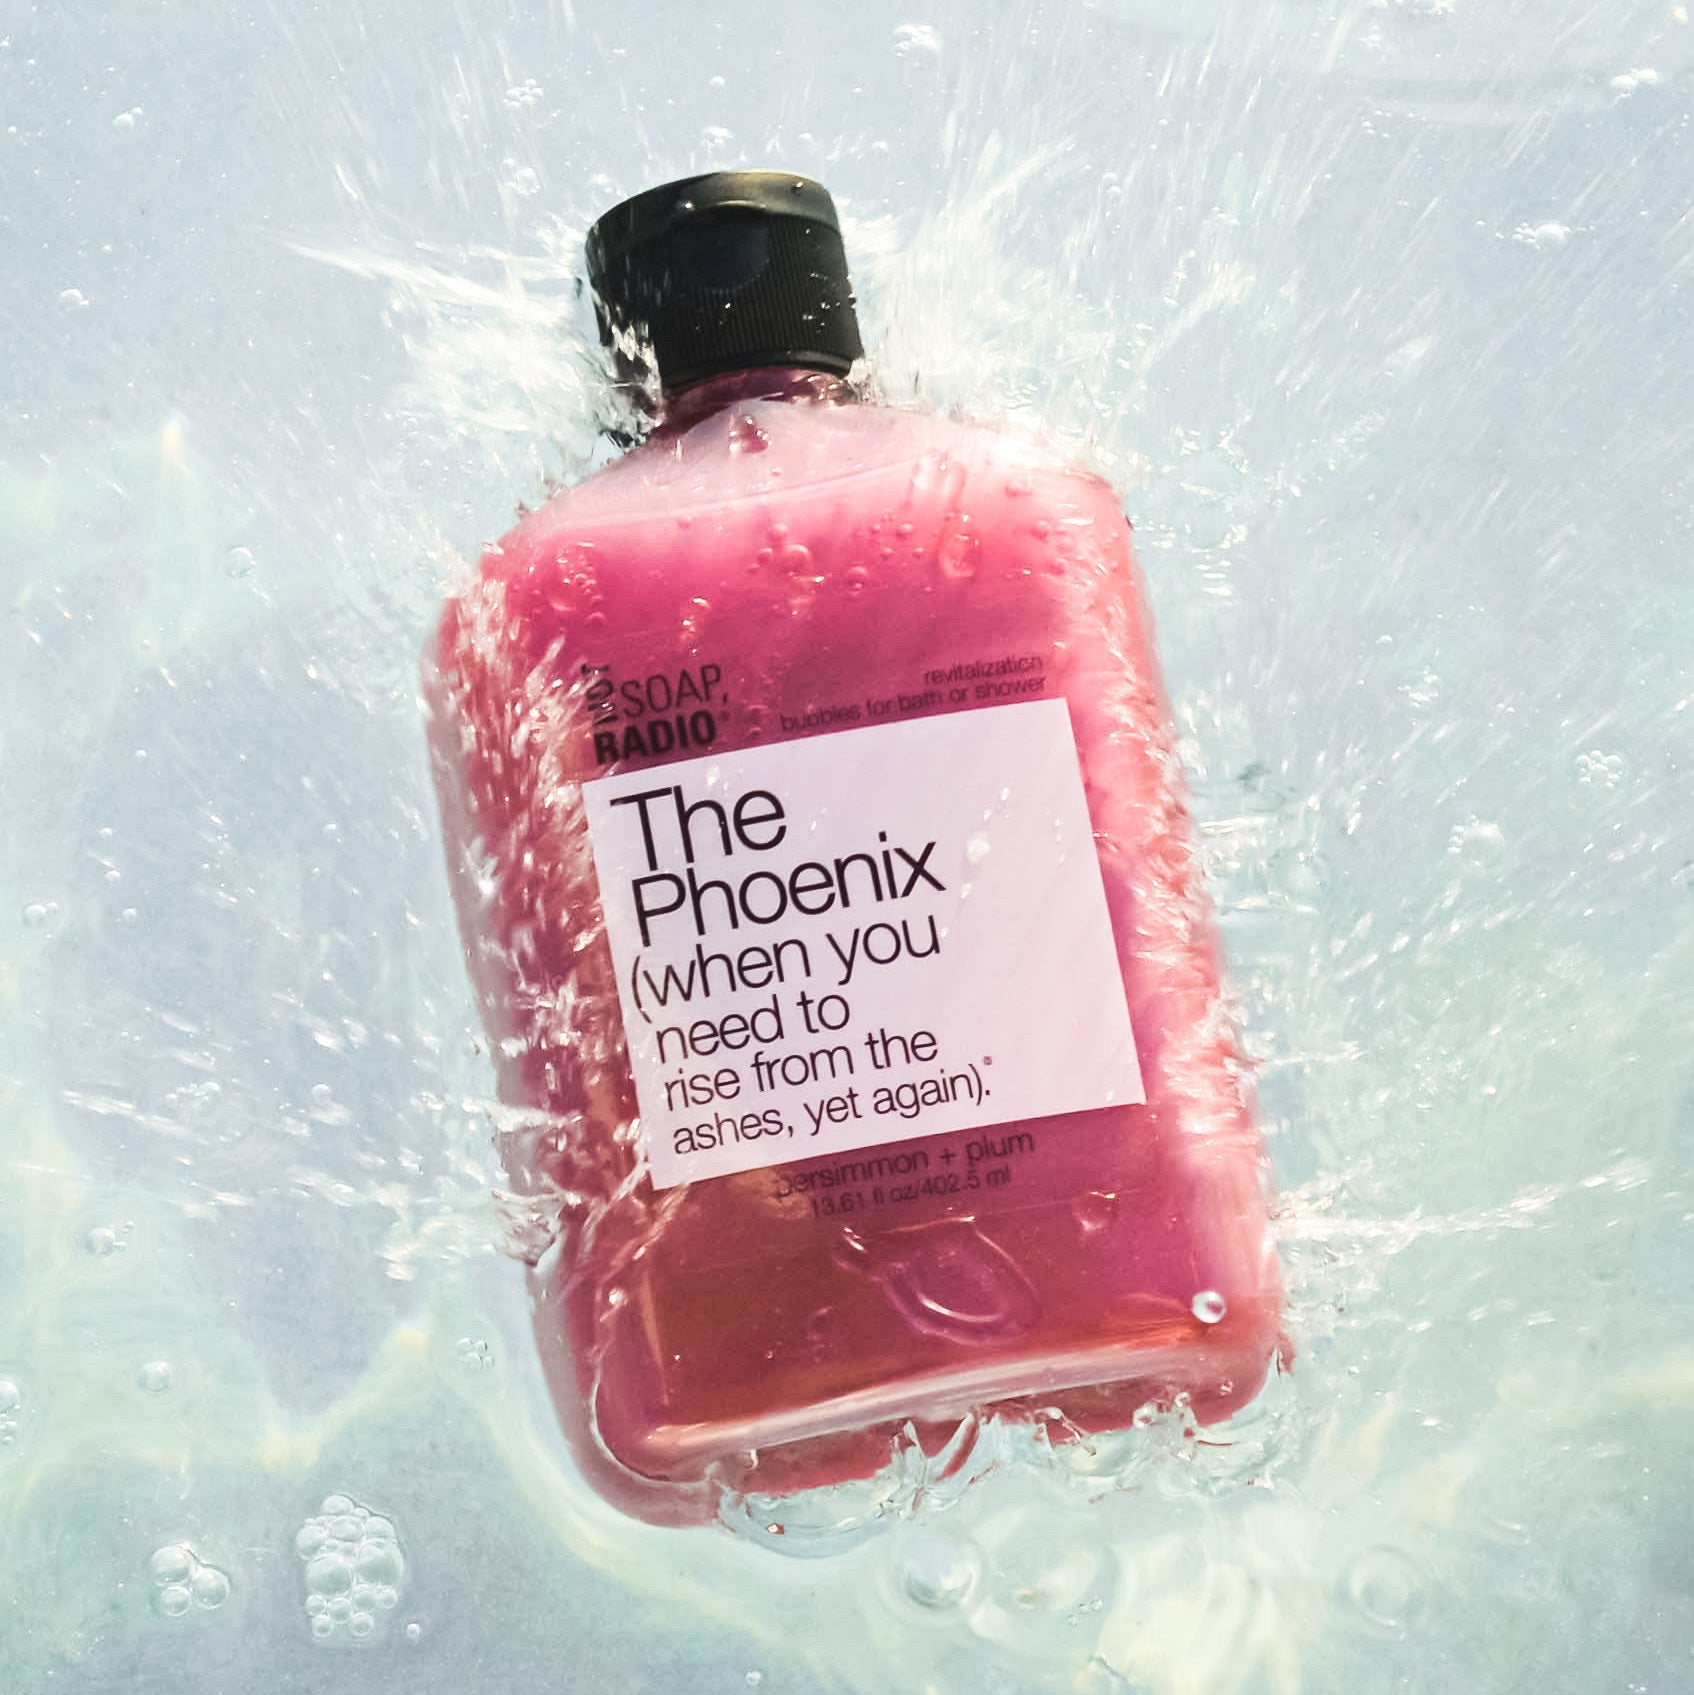 The Phoenix bath/shower gel